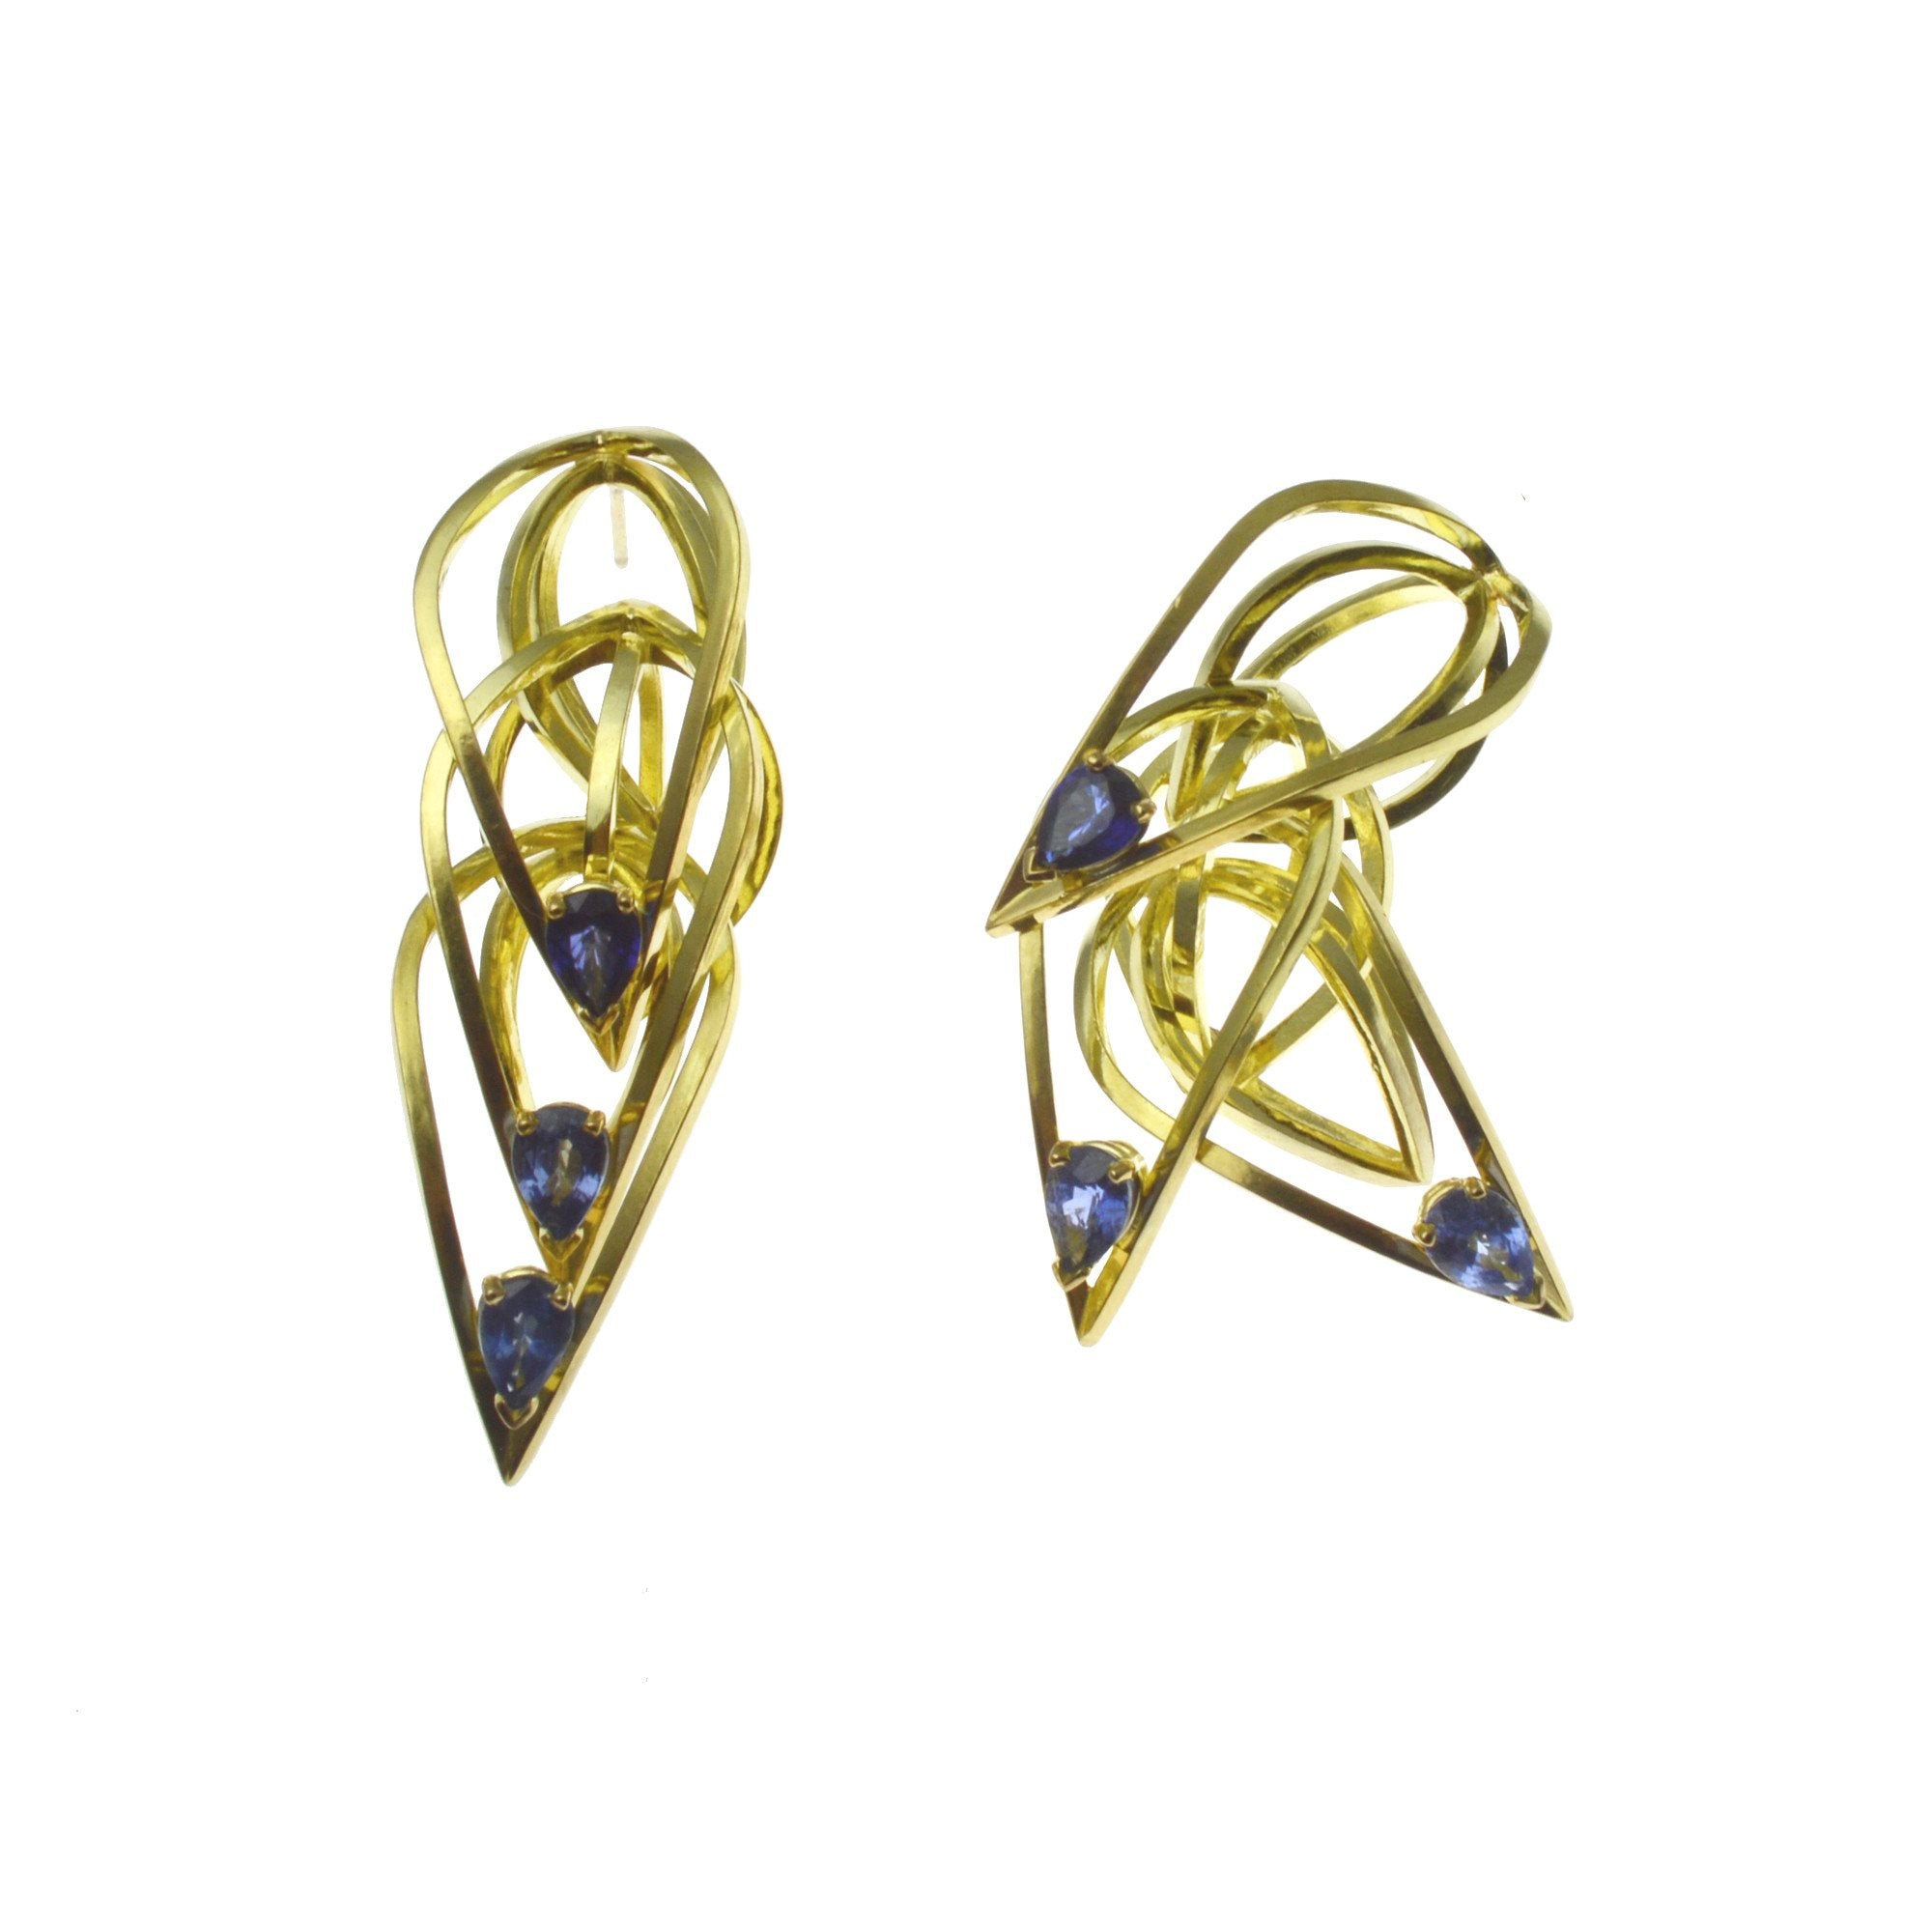 Tighra Earrings in 18k Gold with Blue Sapphires